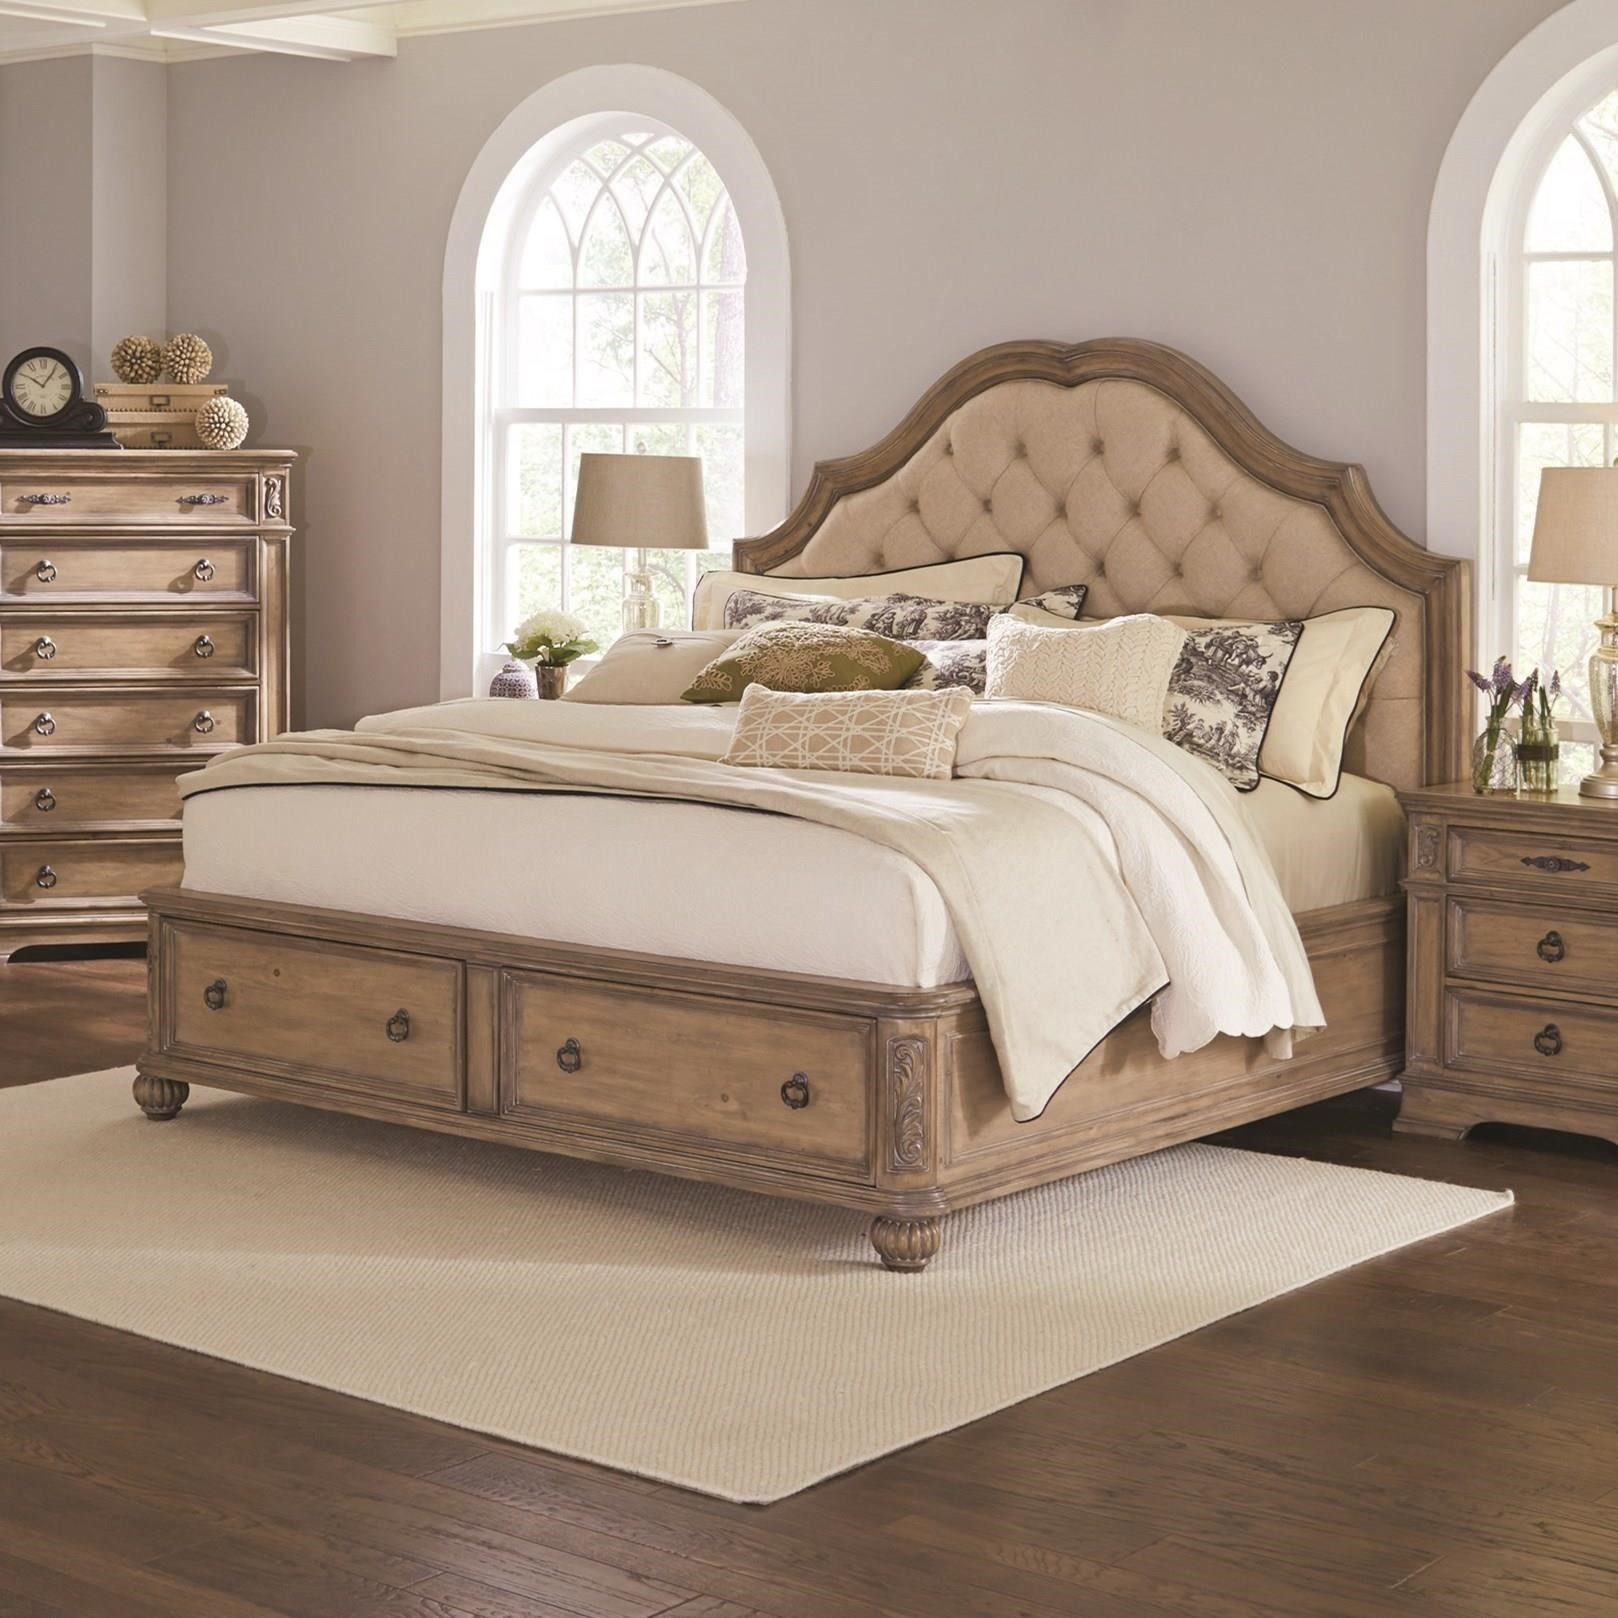 storage headboard and bed Queen drawers with